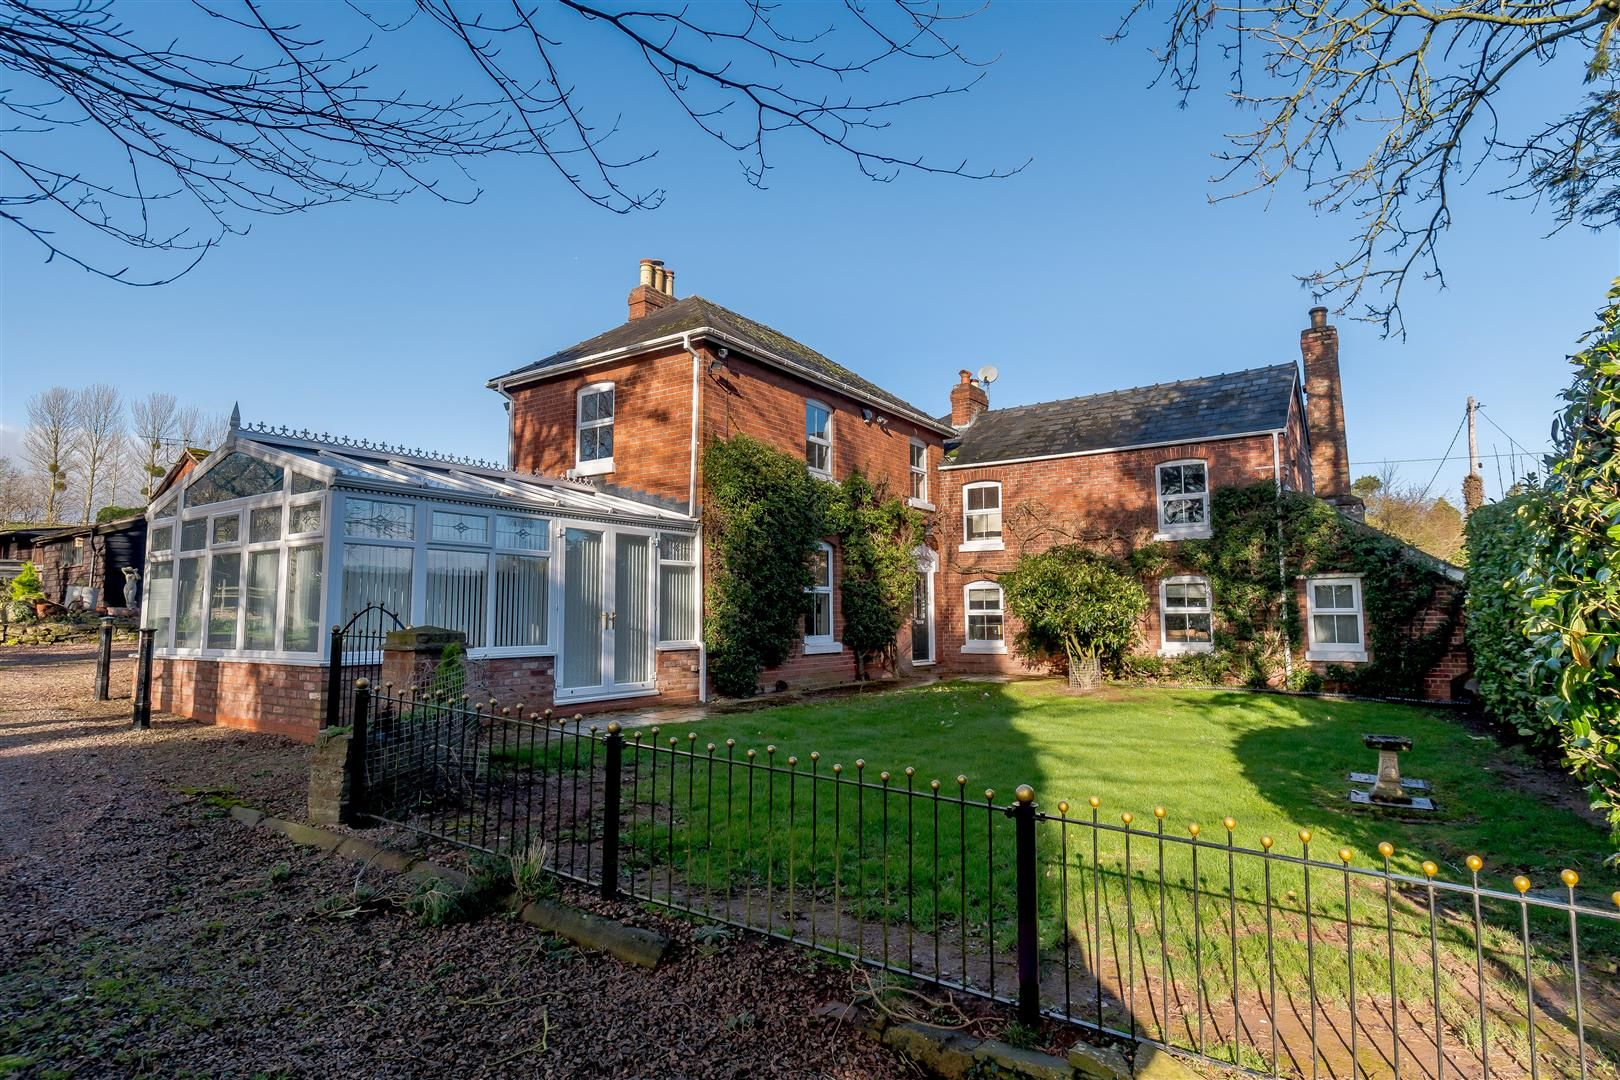 5 bed detached for sale in Burghill, HR4